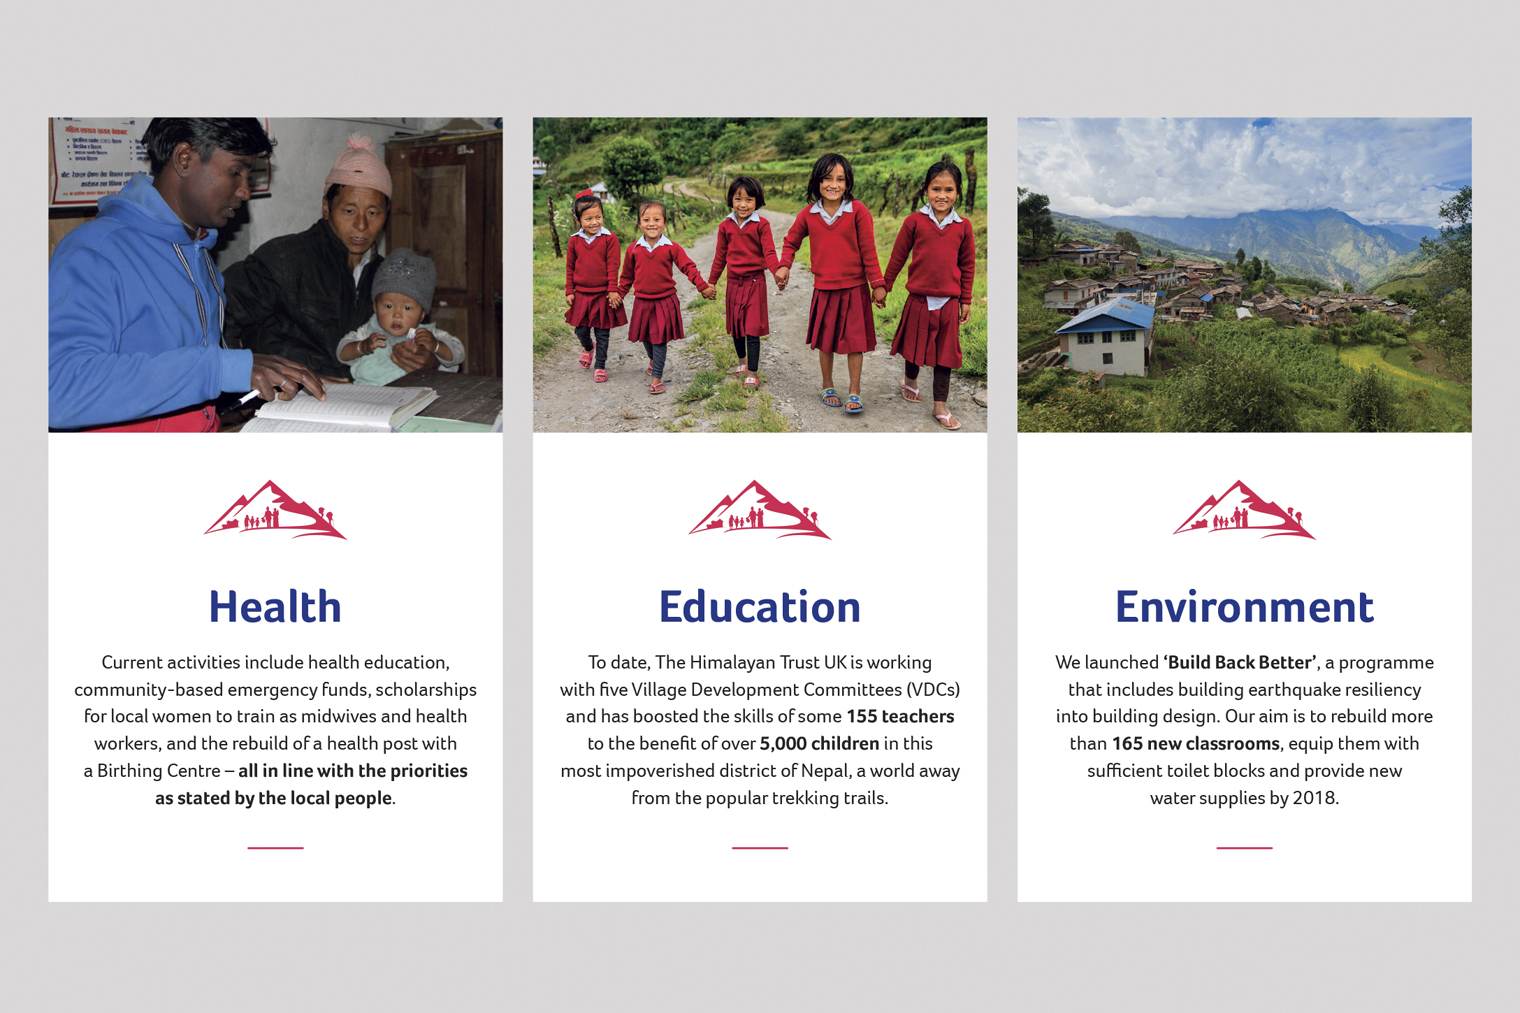 Example of the three areas for Himalayan trust website